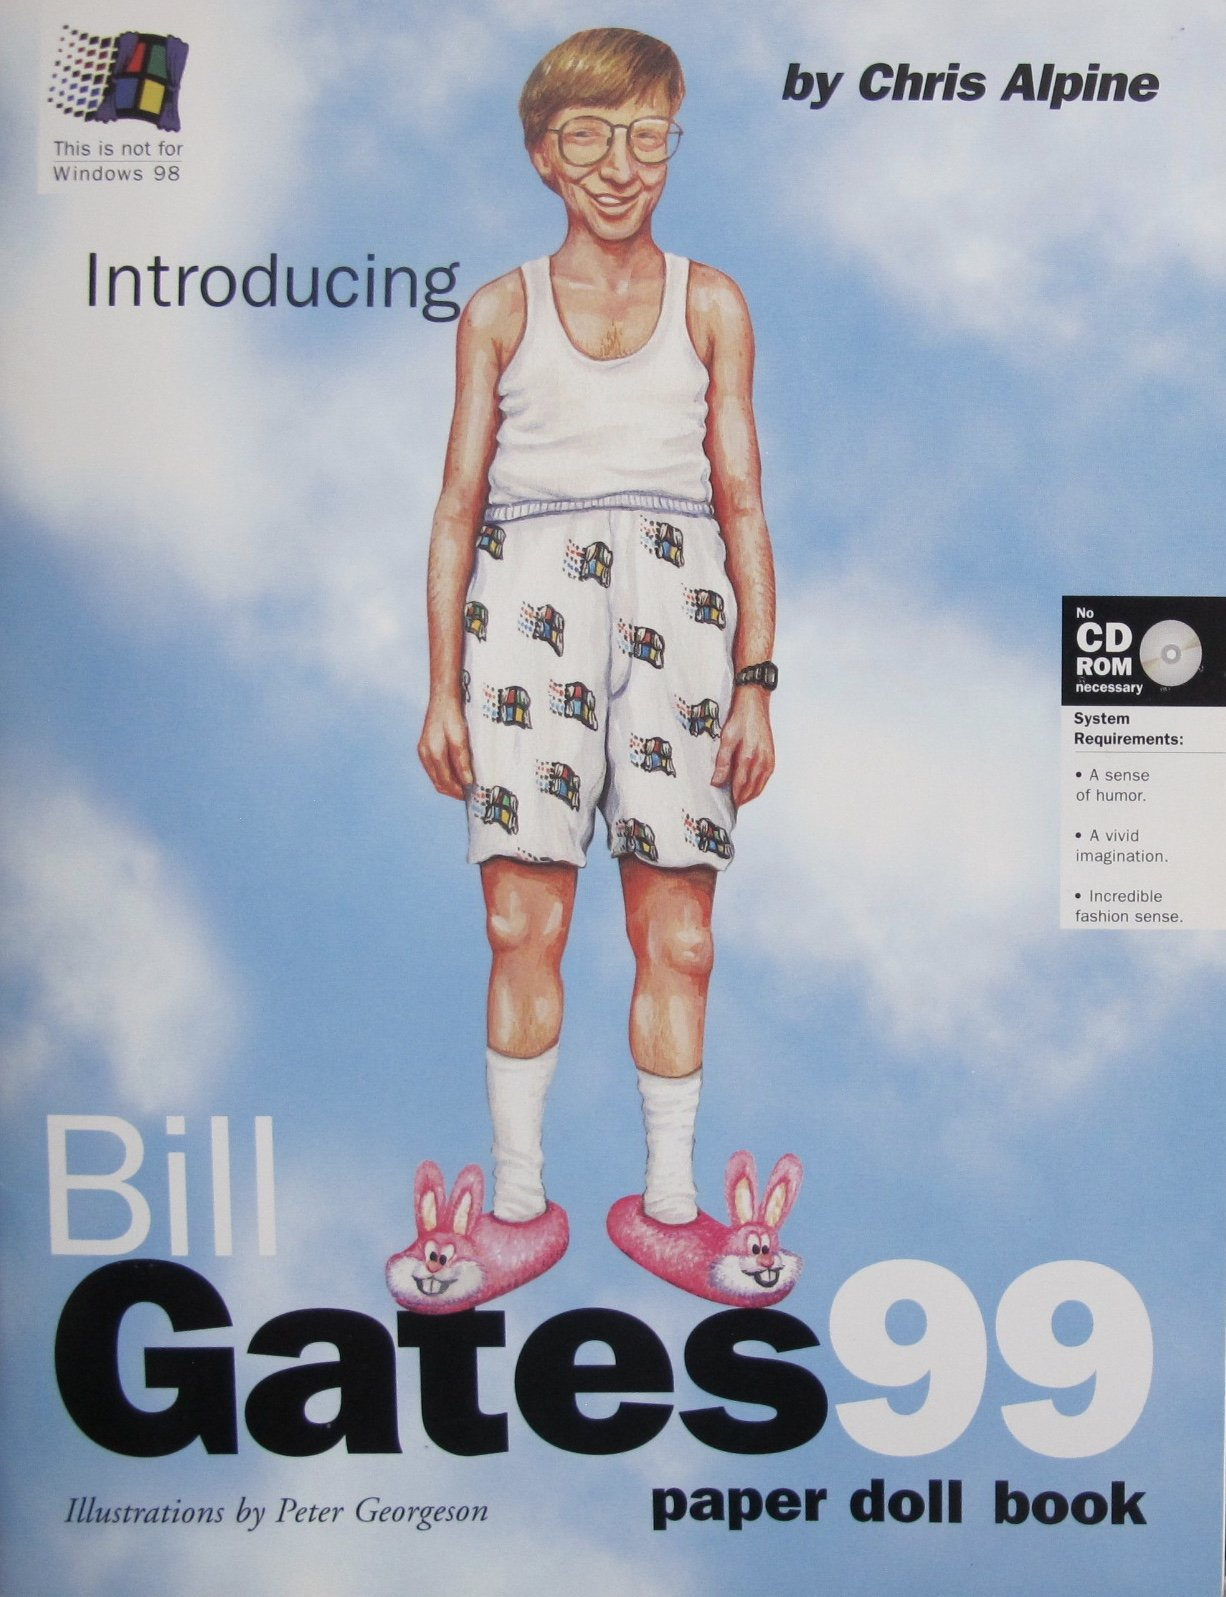 Introducing BILL GATES 99 PAPER DOLL & Microsoft 'Spoof' BOOK by Chris Alpine (UNCUT) w 4 Card Stock DOLLS, Fashions & FUN Microsoft Spoofs (1998)